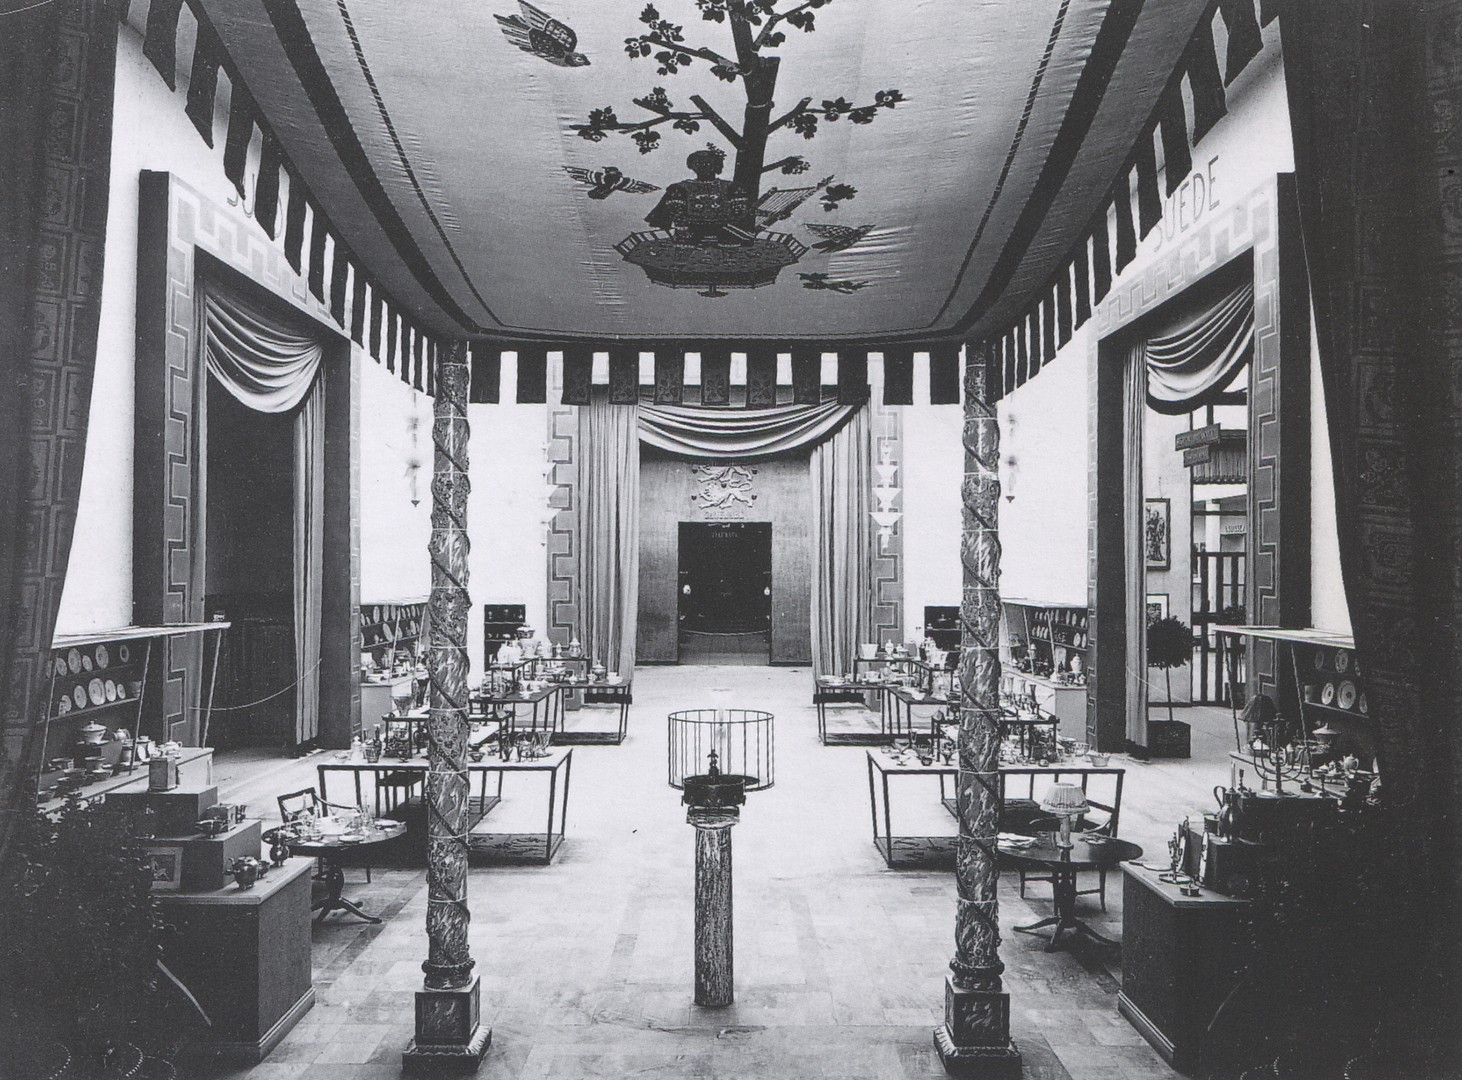 The Swedish National Pavilion in Paris 1925, designed by architect Carl  Bergsten | pin | Pinterest | Pavilion, Nordic classicism and Architects